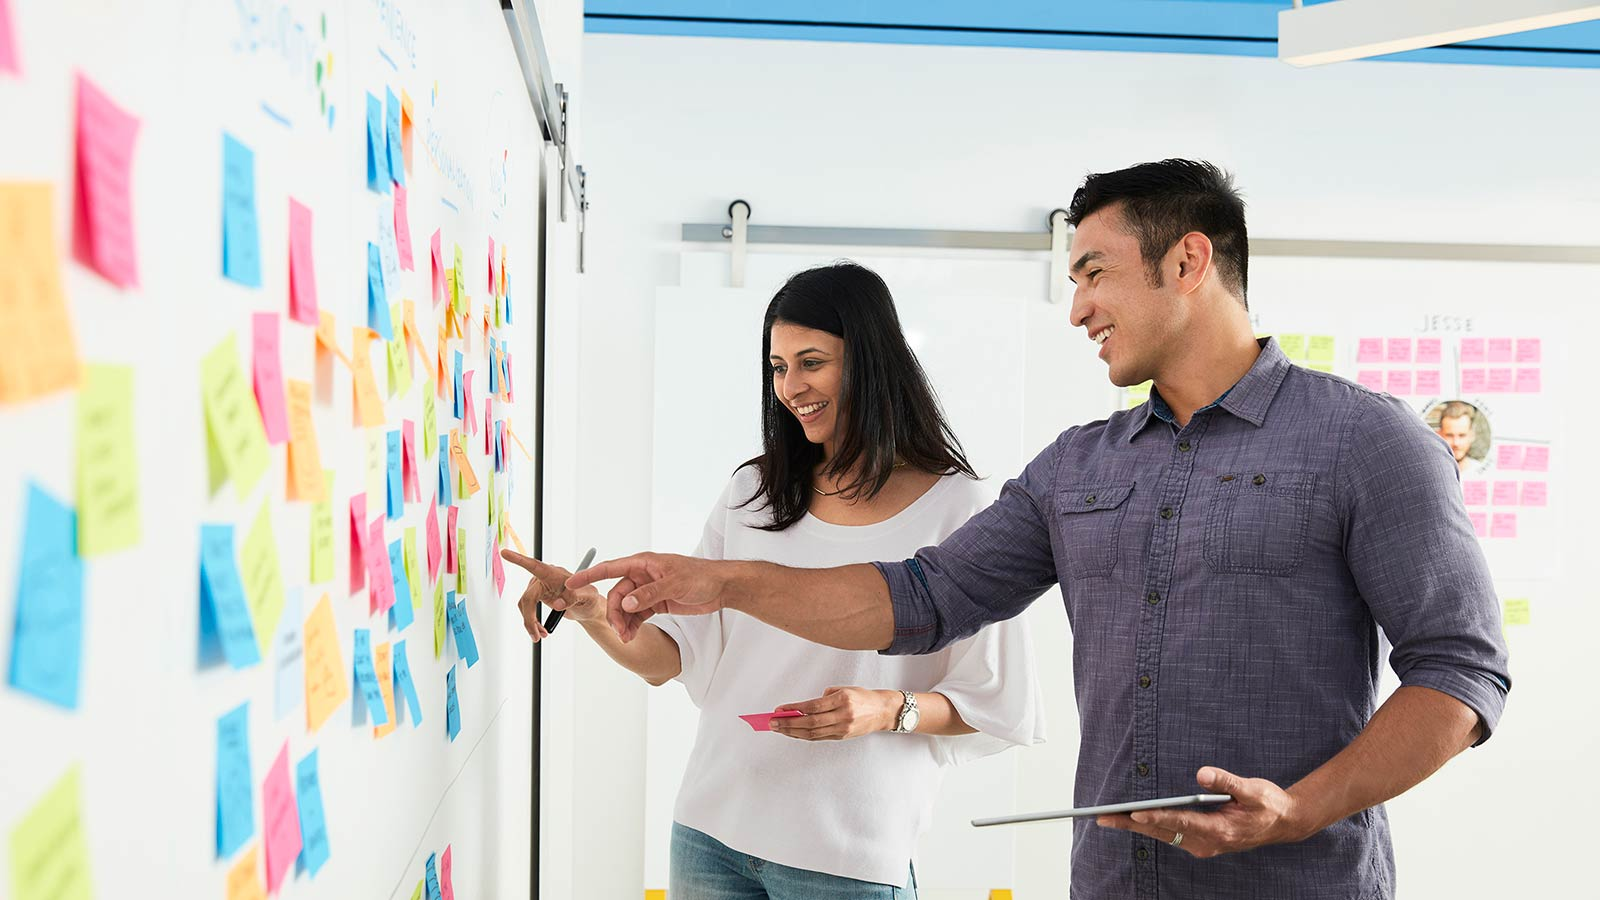 Man and woman in front of whiteboard with sticky notes of innovative ideas.